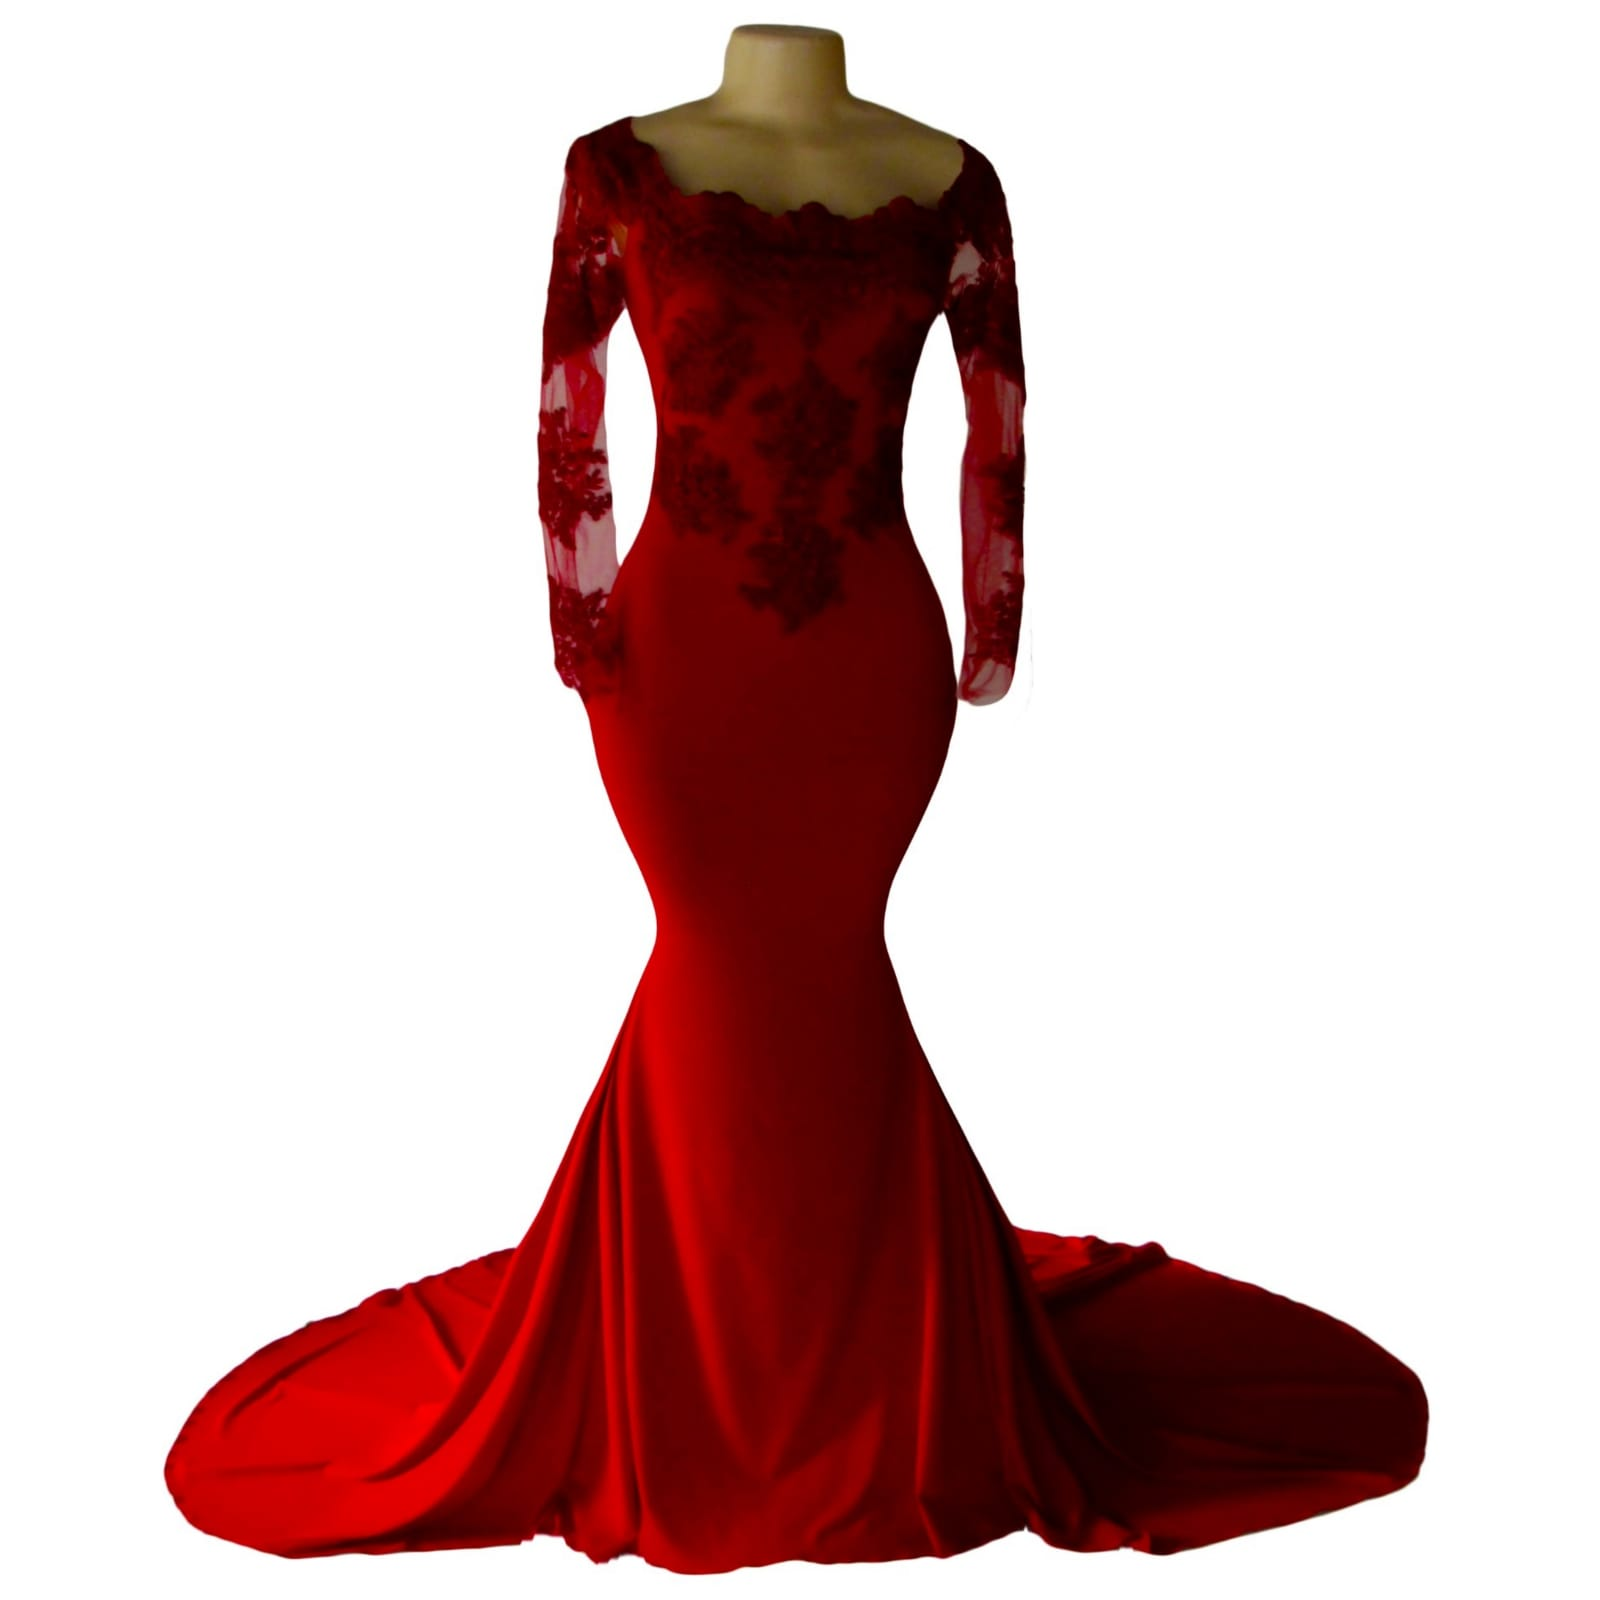 Off shoulder deep red soft mermaid prom dress 6 off shoulder deep red soft mermaid prom dress with an illusion long lace sleeves. Bodice detailed with lace and beads. With a train